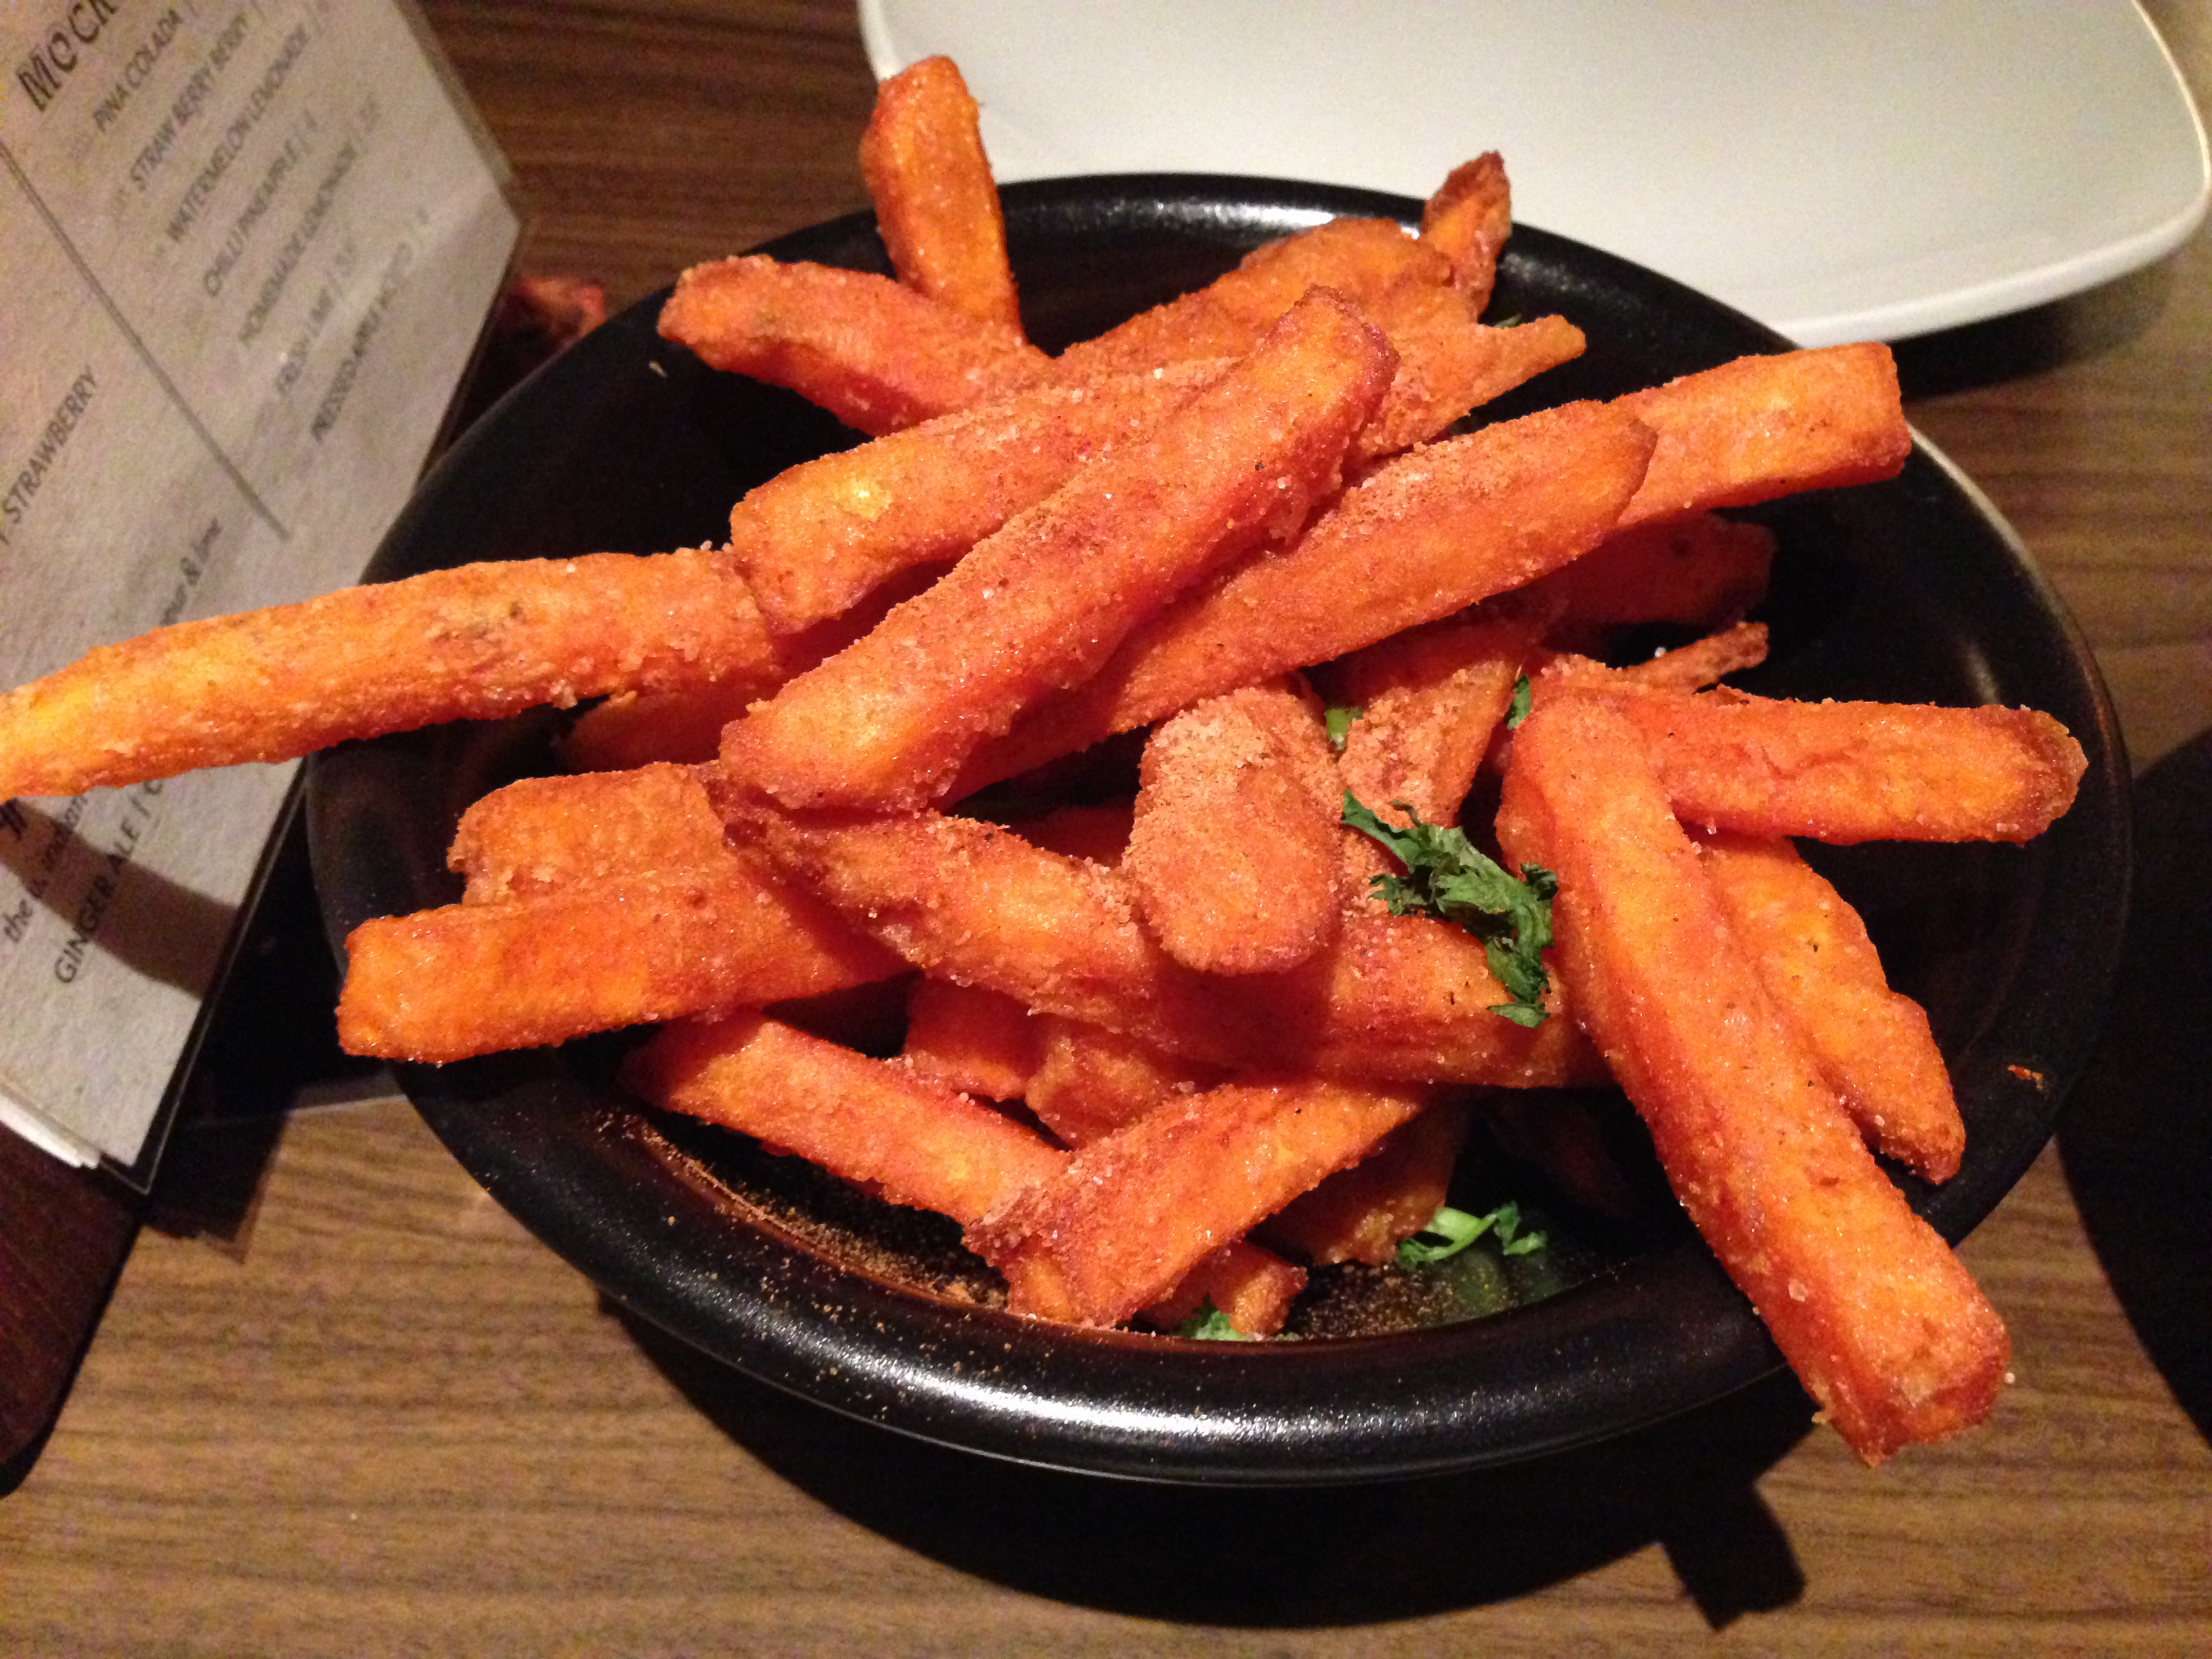 Gunpowder chips from Mughli Manchester